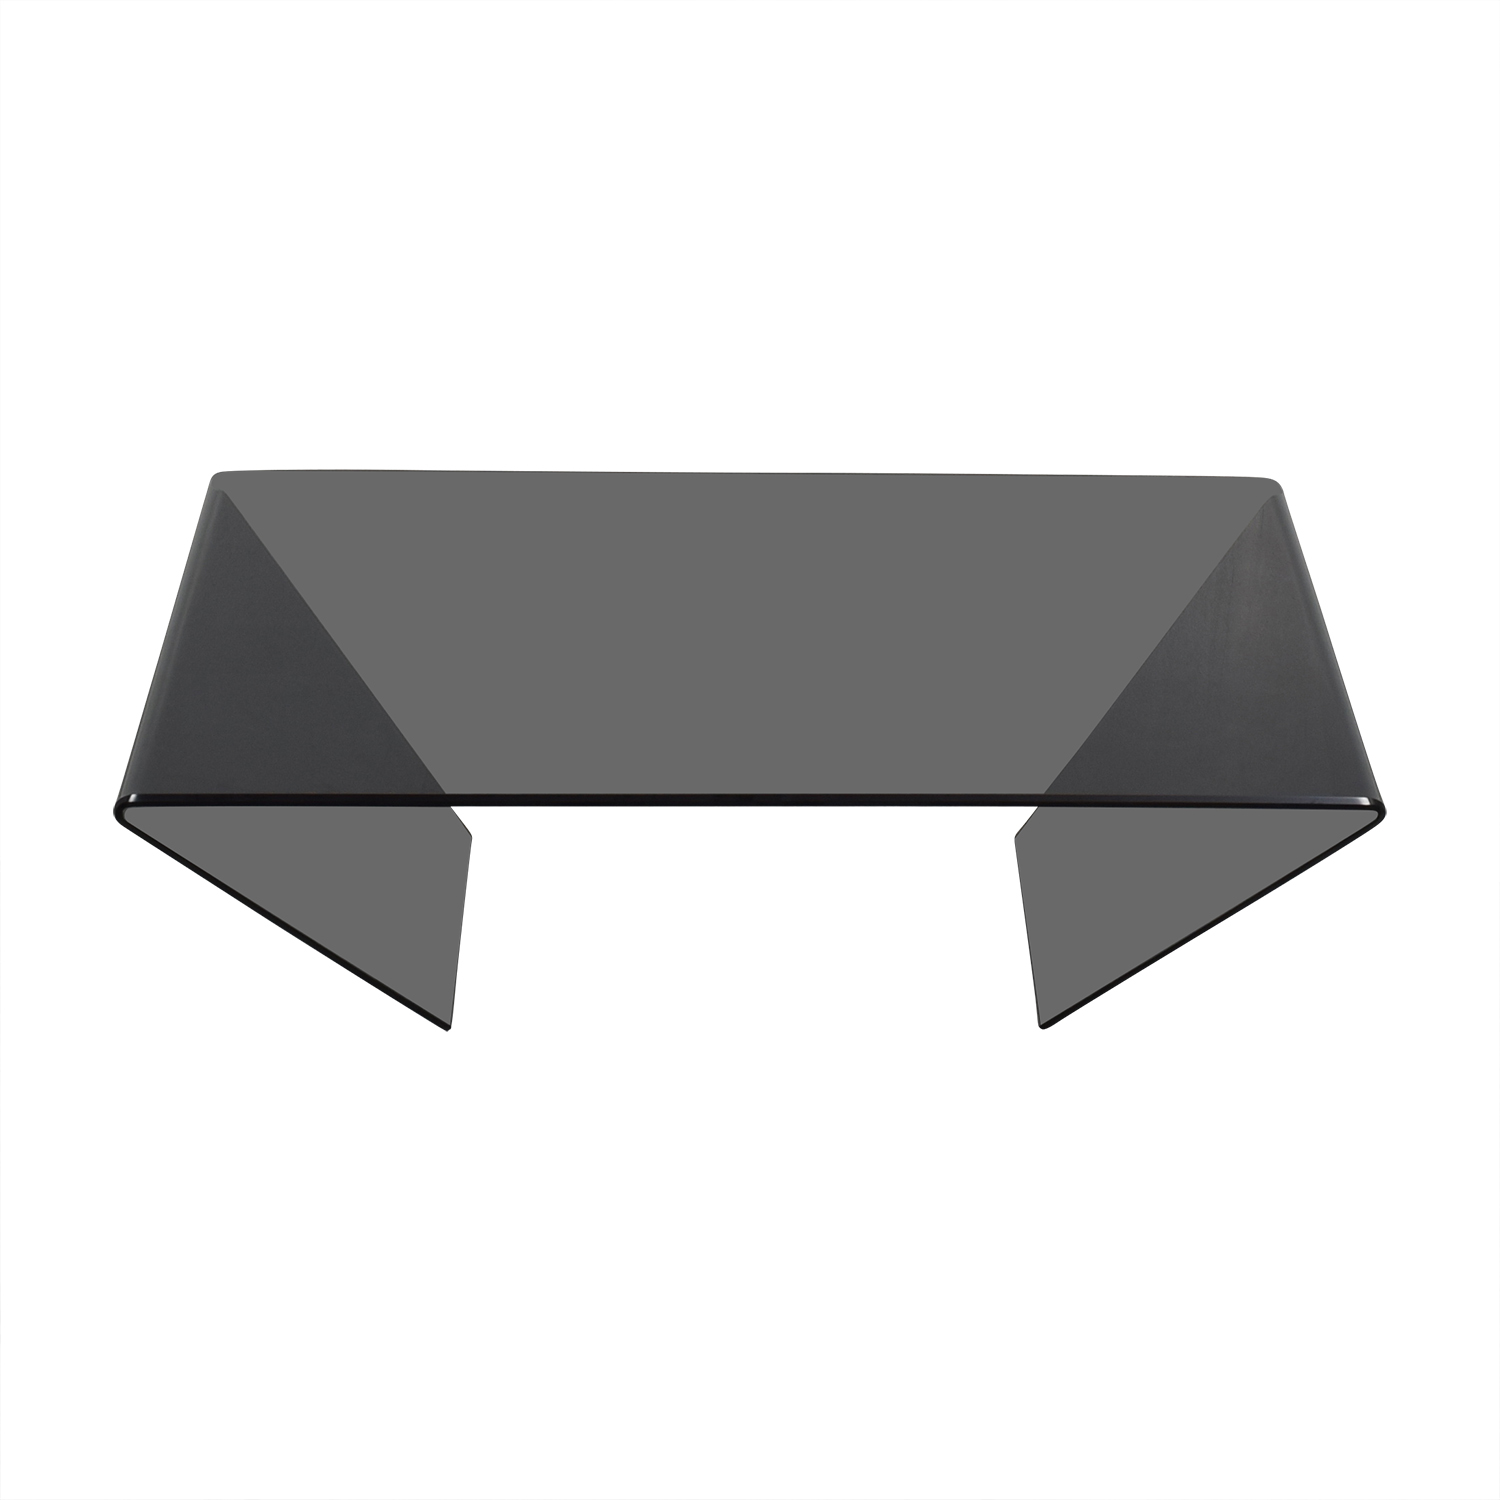 J & M Furniture J & M Furniture Bent Black Glass Coffee Table for sale